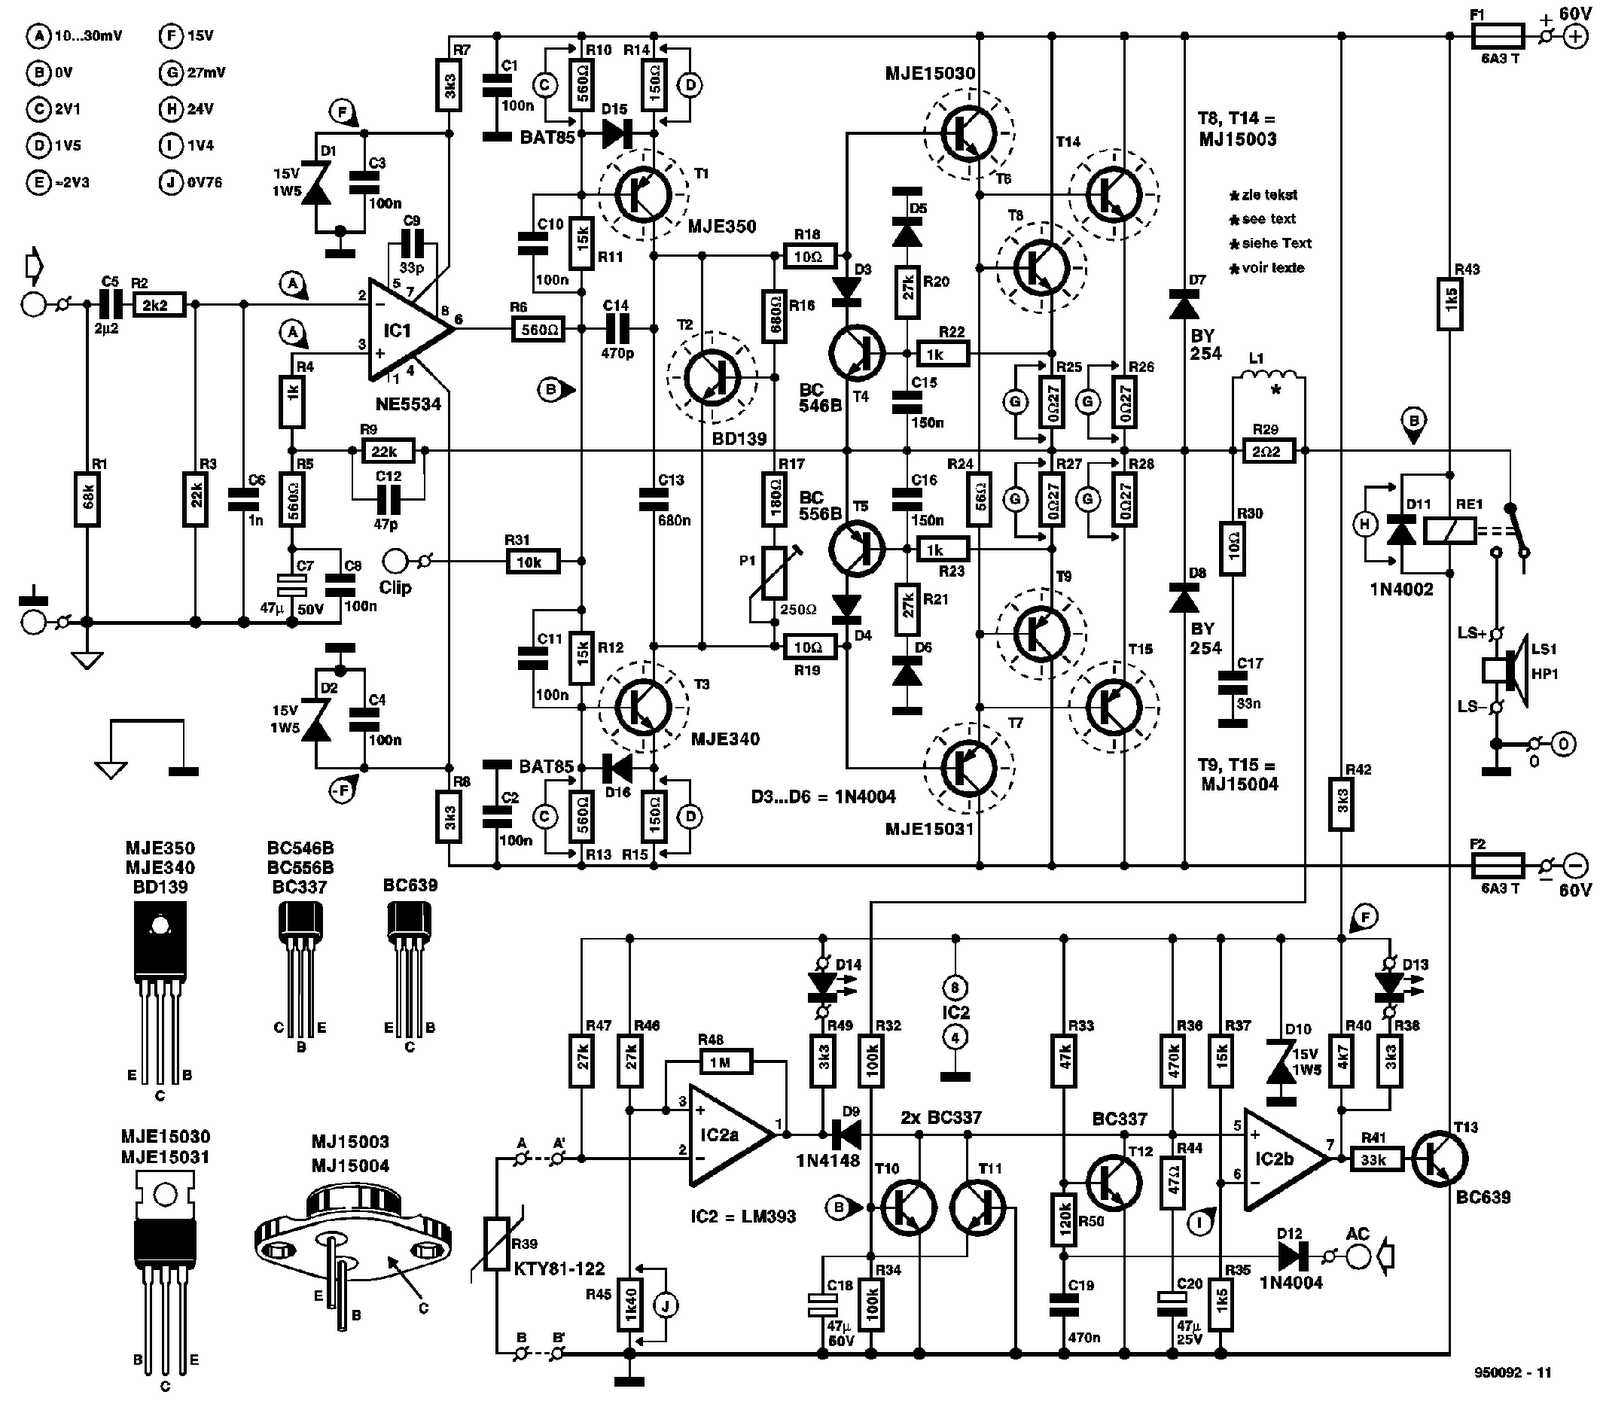 wiring diagram for harley davidson golf cart the wiring diagram 1977 harley davidson golf cart wiring diagram 1977 wiring diagram